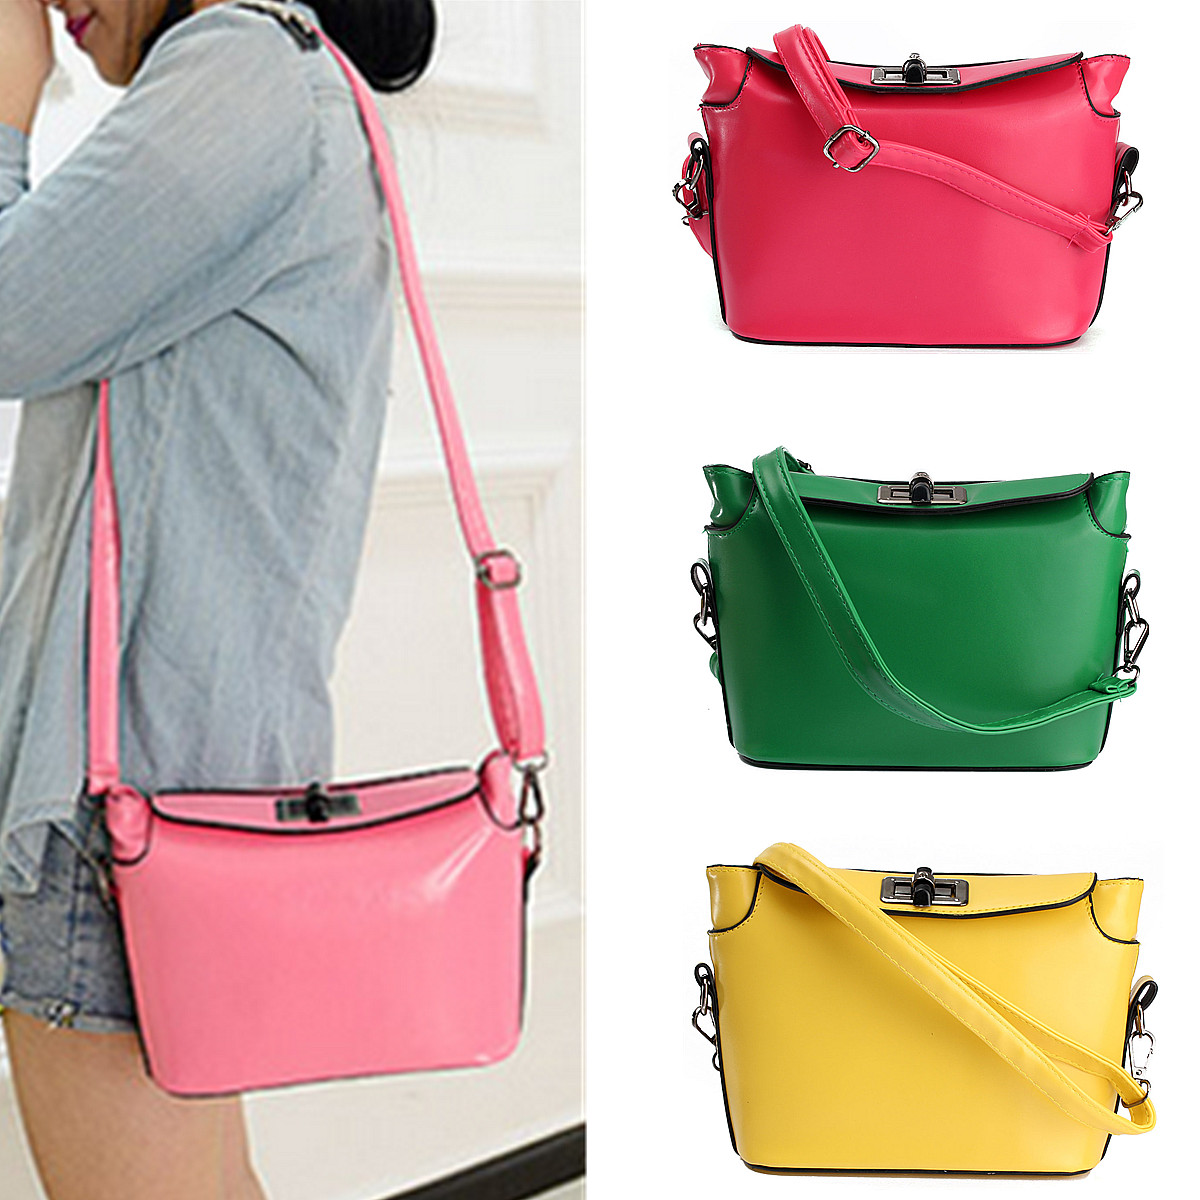 Fashion Leather Handbag For Women Mini Colorful Casual Shoulder Messenger Bag